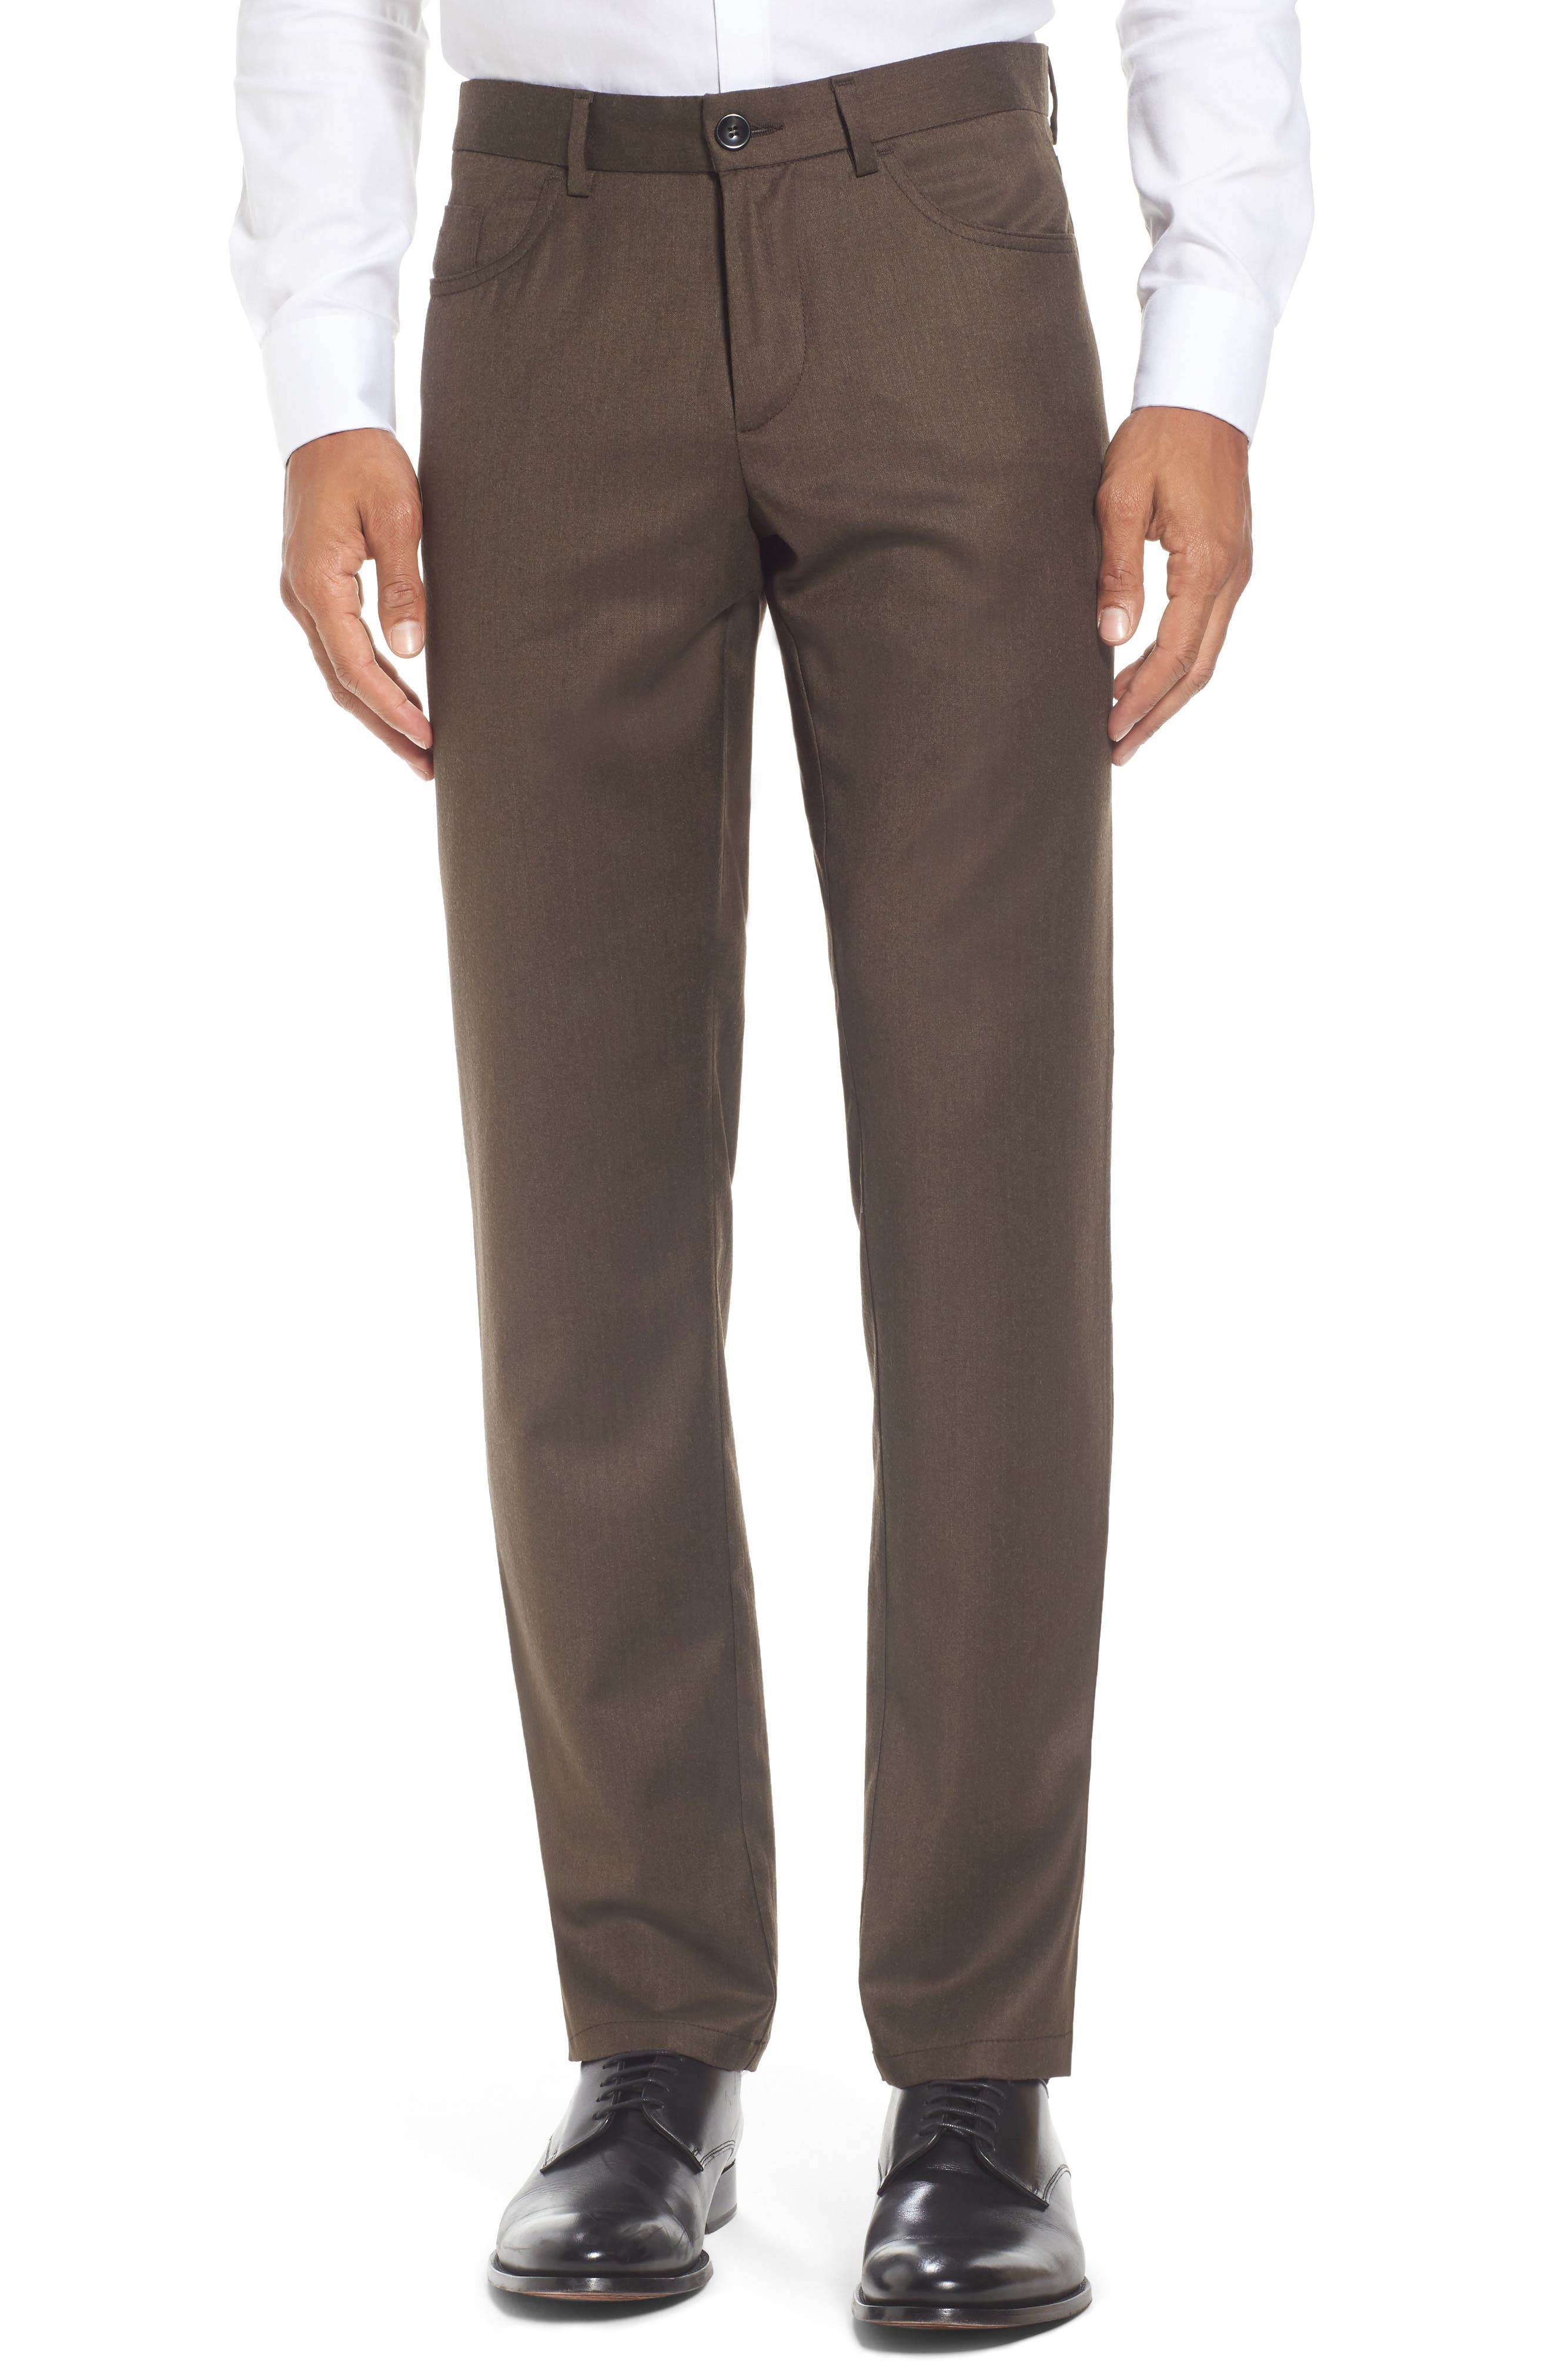 Monte Rosso Flat Front Solid Stretch Wool Trousers